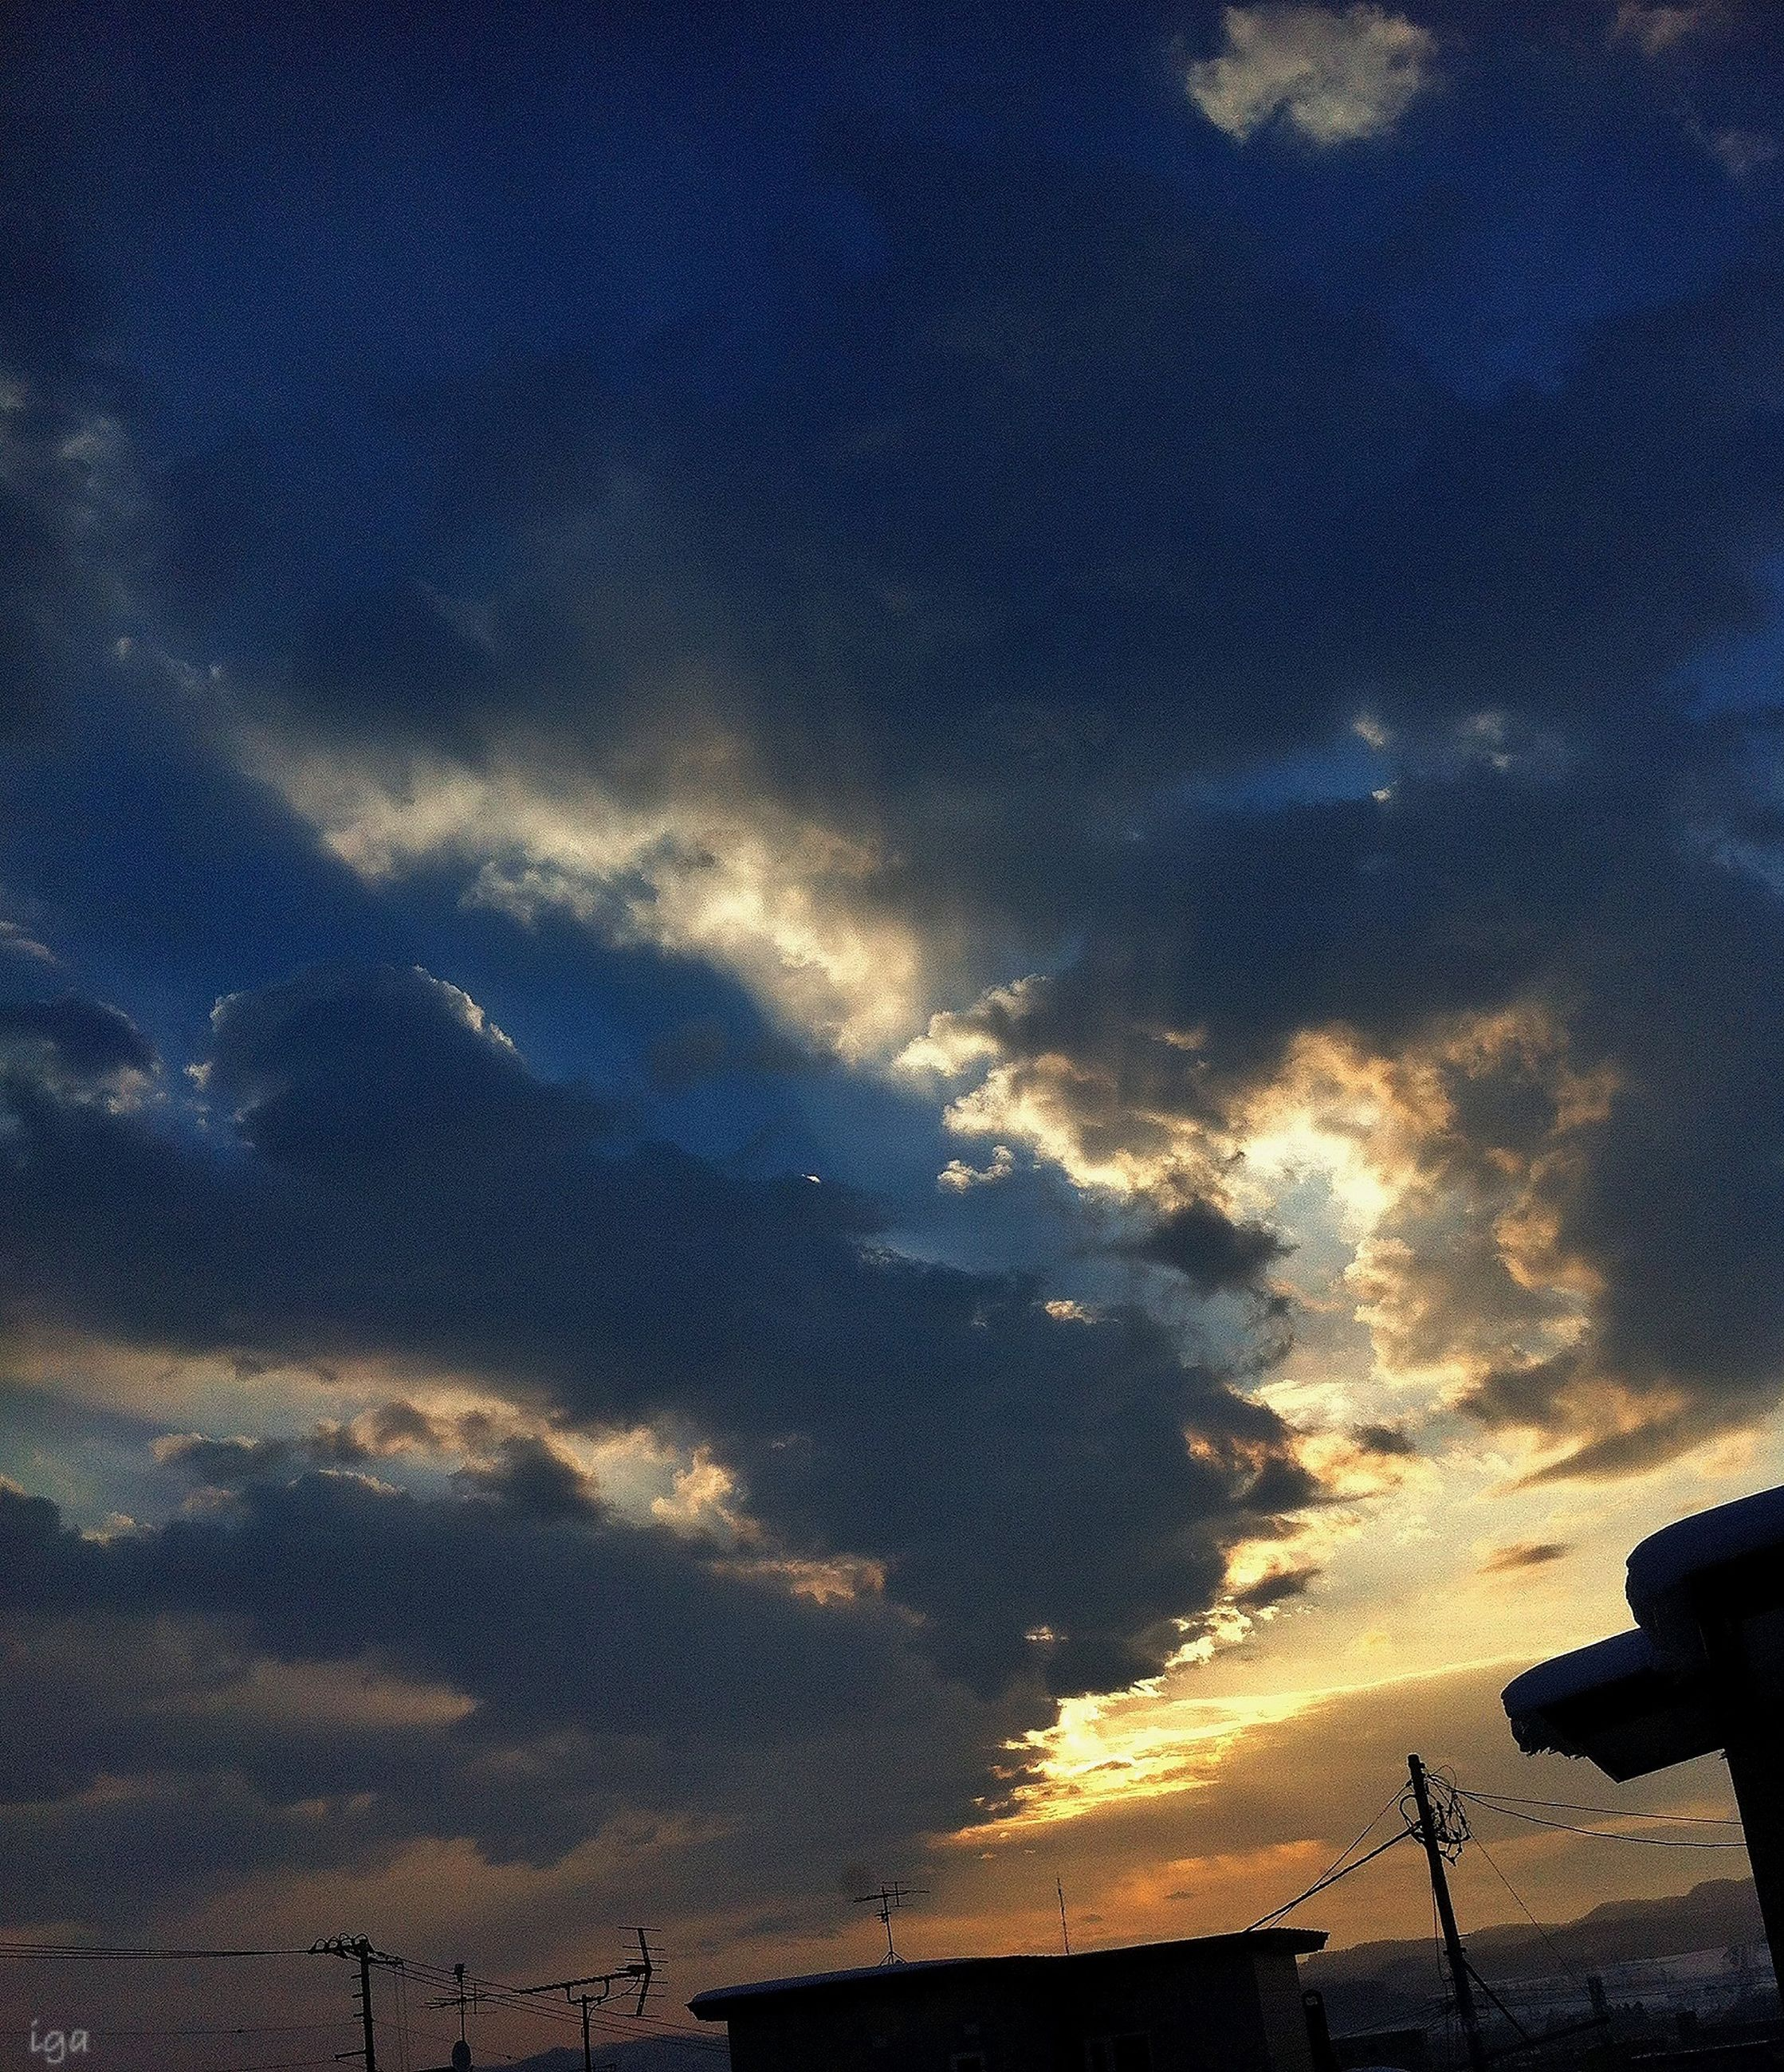 sky, cloud - sky, silhouette, sunset, low angle view, cloudy, scenics, tranquility, dusk, beauty in nature, tranquil scene, nature, cloud, outdoors, dramatic sky, sunlight, no people, weather, cloudscape, dark